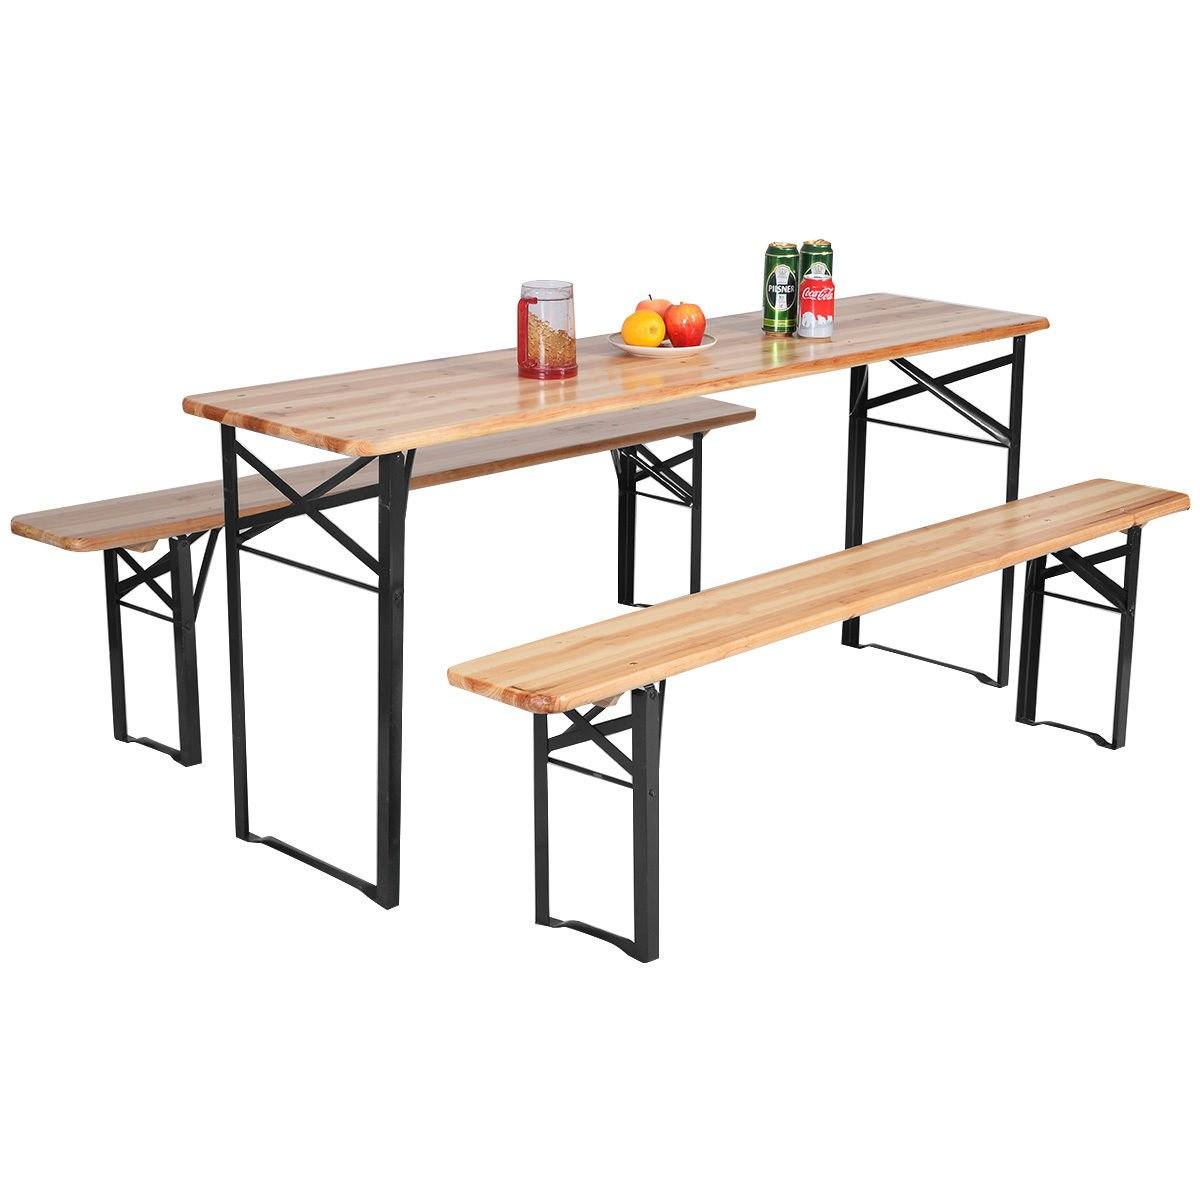 Amazon.com Giantex 3 PCS Beer Table Bench Set Folding Wooden Top Picnic Table Patio Garden Kitchen u0026 Dining  sc 1 st  Amazon.com & Amazon.com: Giantex 3 PCS Beer Table Bench Set Folding Wooden Top ...